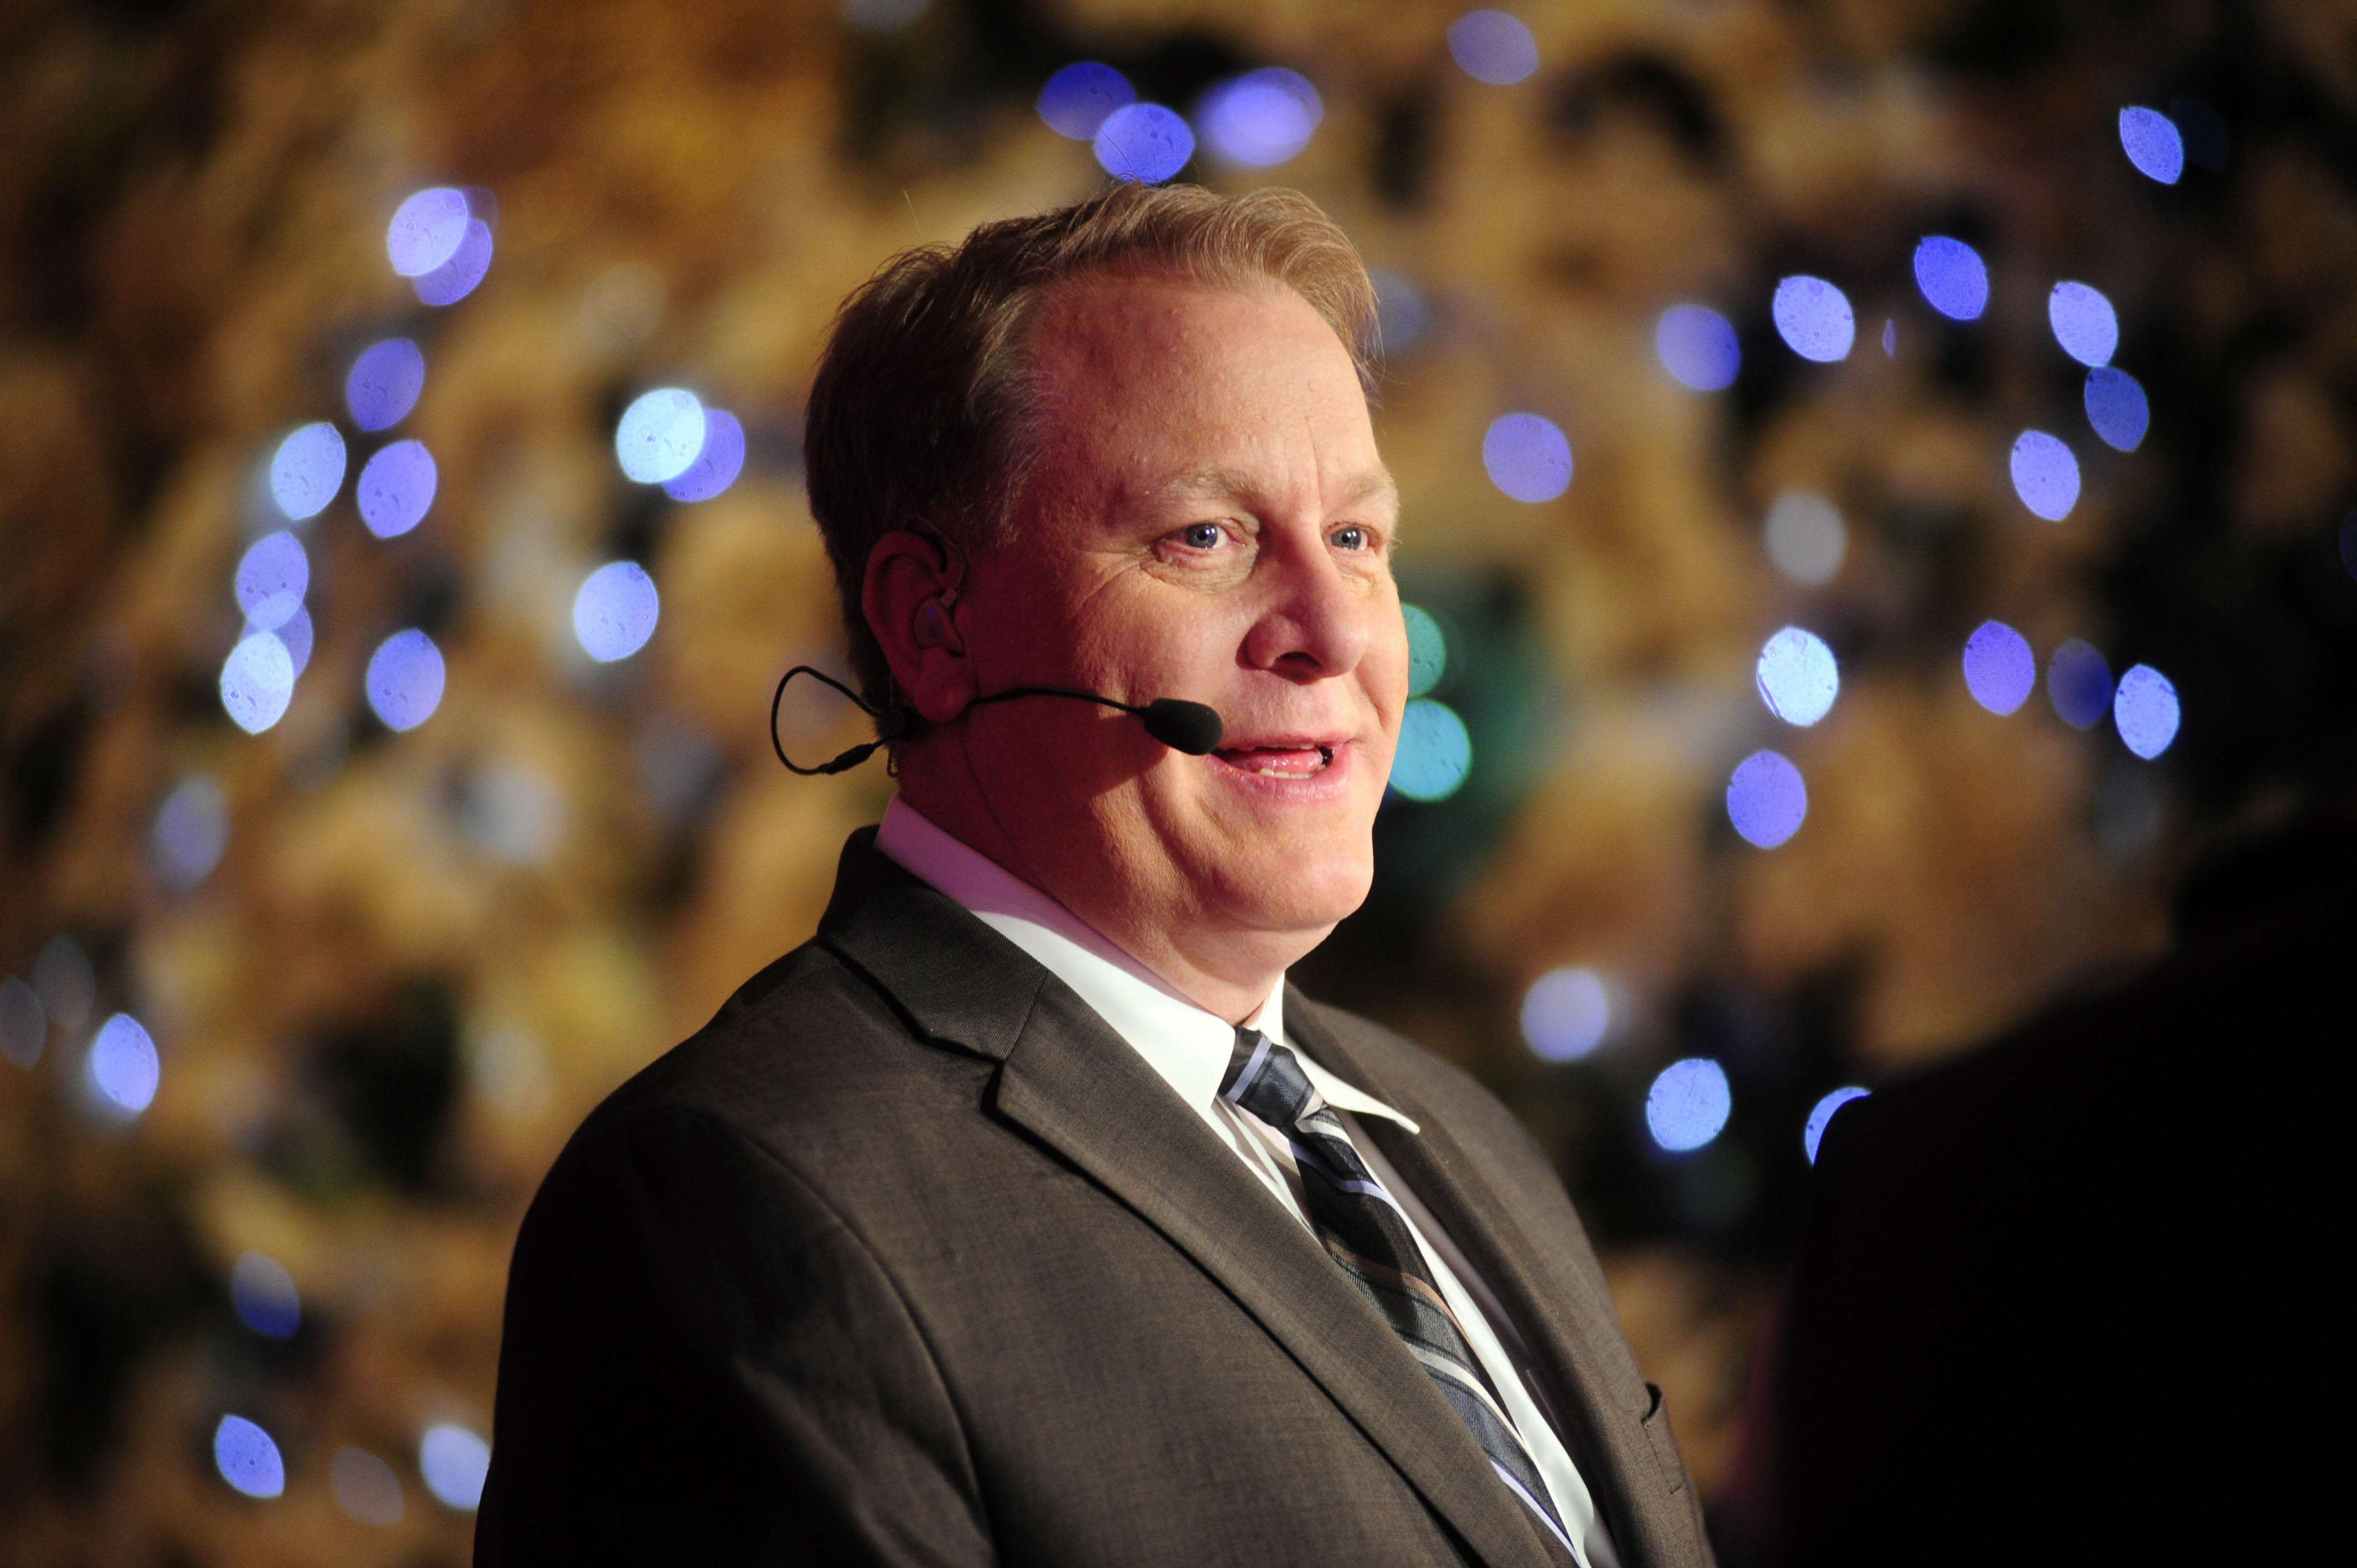 Curt Schilling eviscerates Twitter trolls going after his daughter